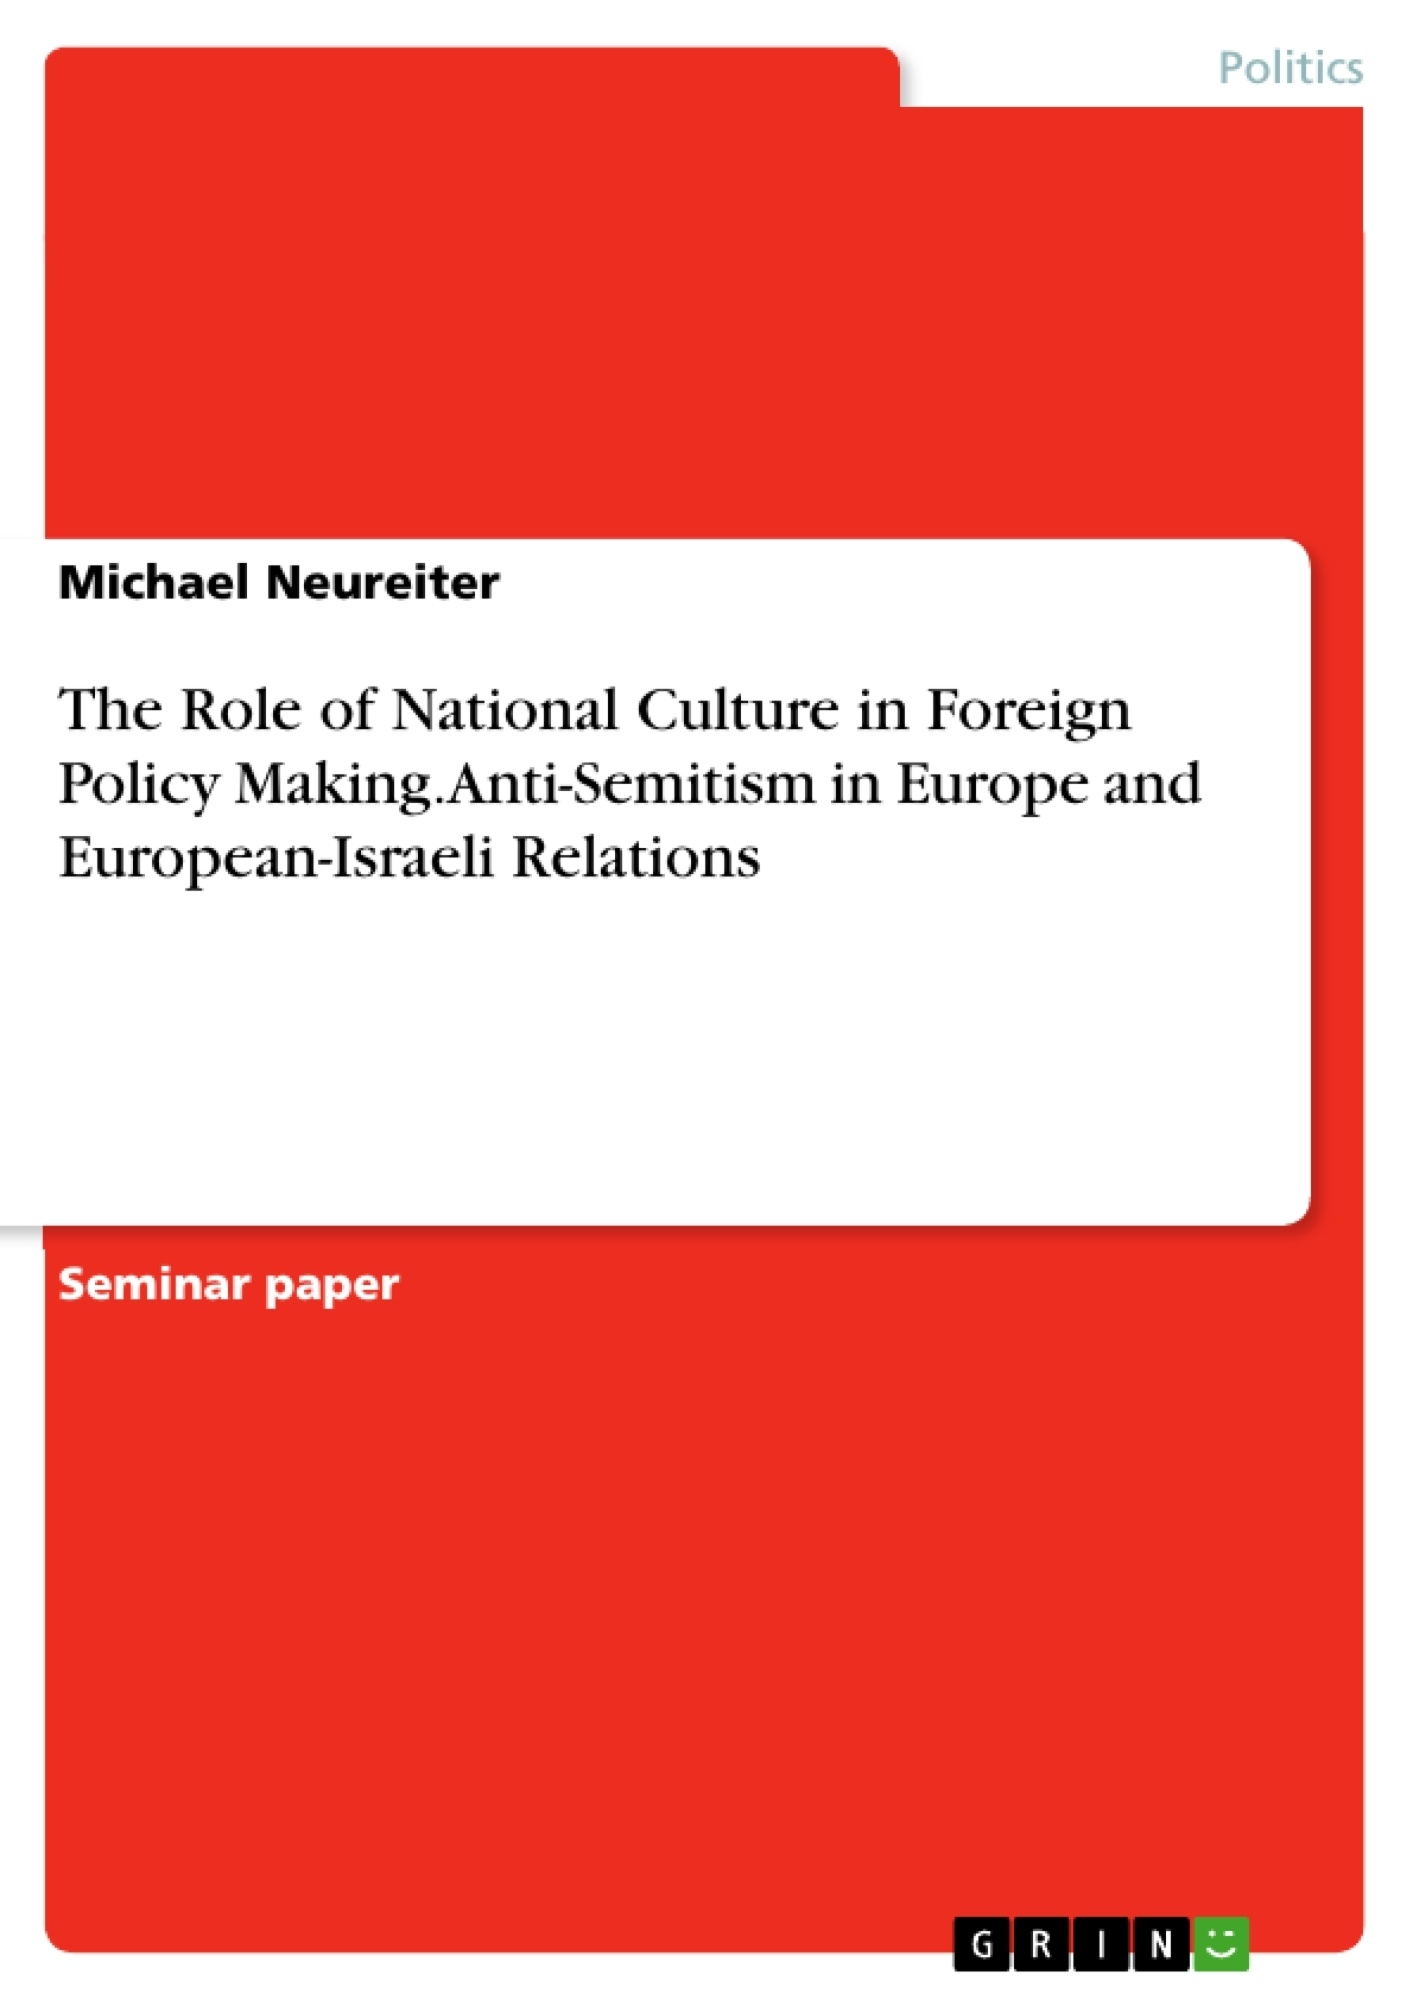 Title: The Role of National Culture in Foreign Policy Making. Anti-Semitism in Europe and European-Israeli Relations